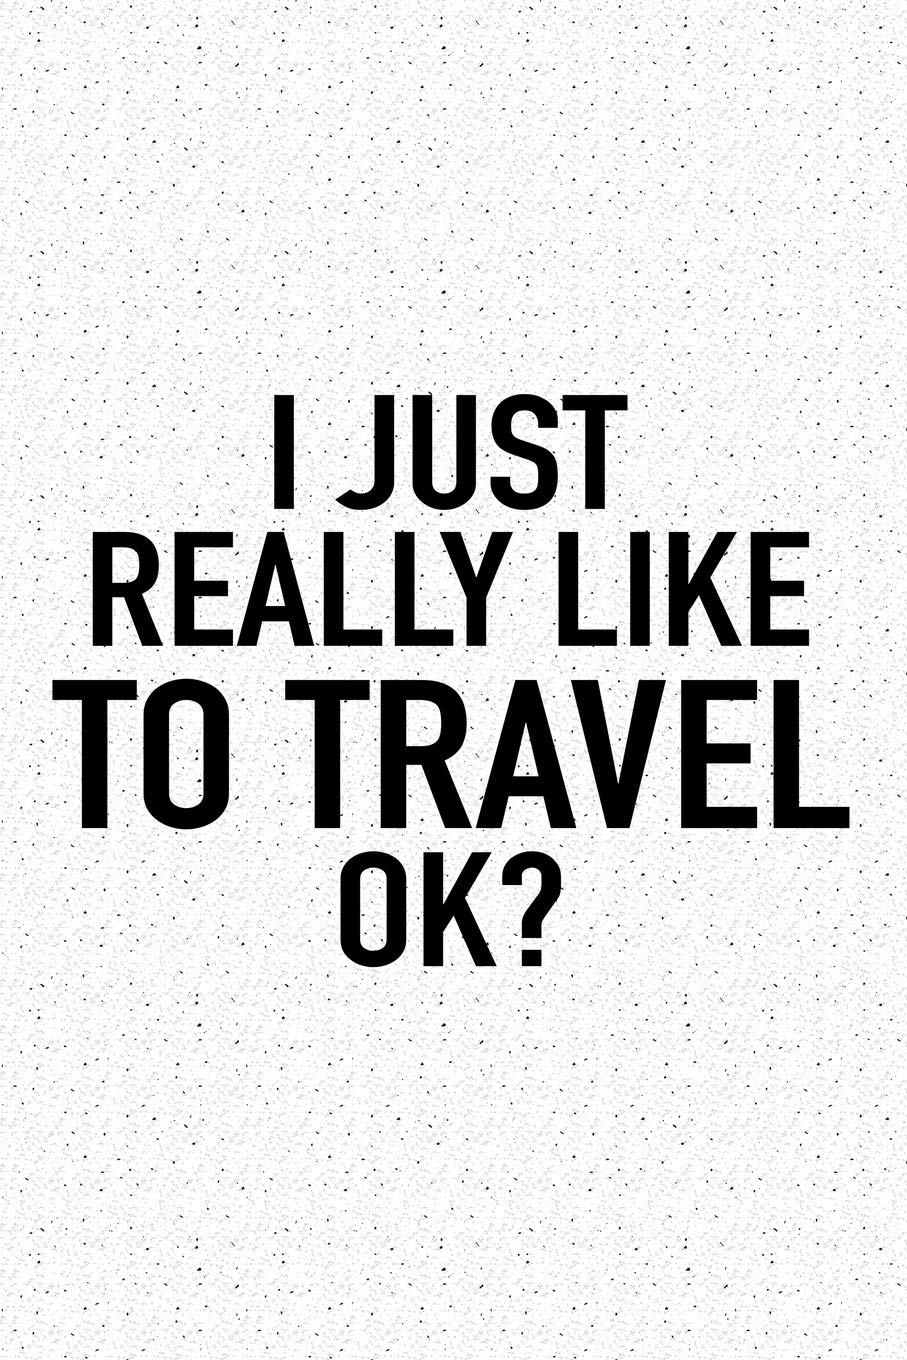 I Just Really Like To Travel Ok?: A 6×9 Inch Matte Softcover Journal Notebook With 120 Blank Lined Pages And A Funny Sarcastic Cover Slogan